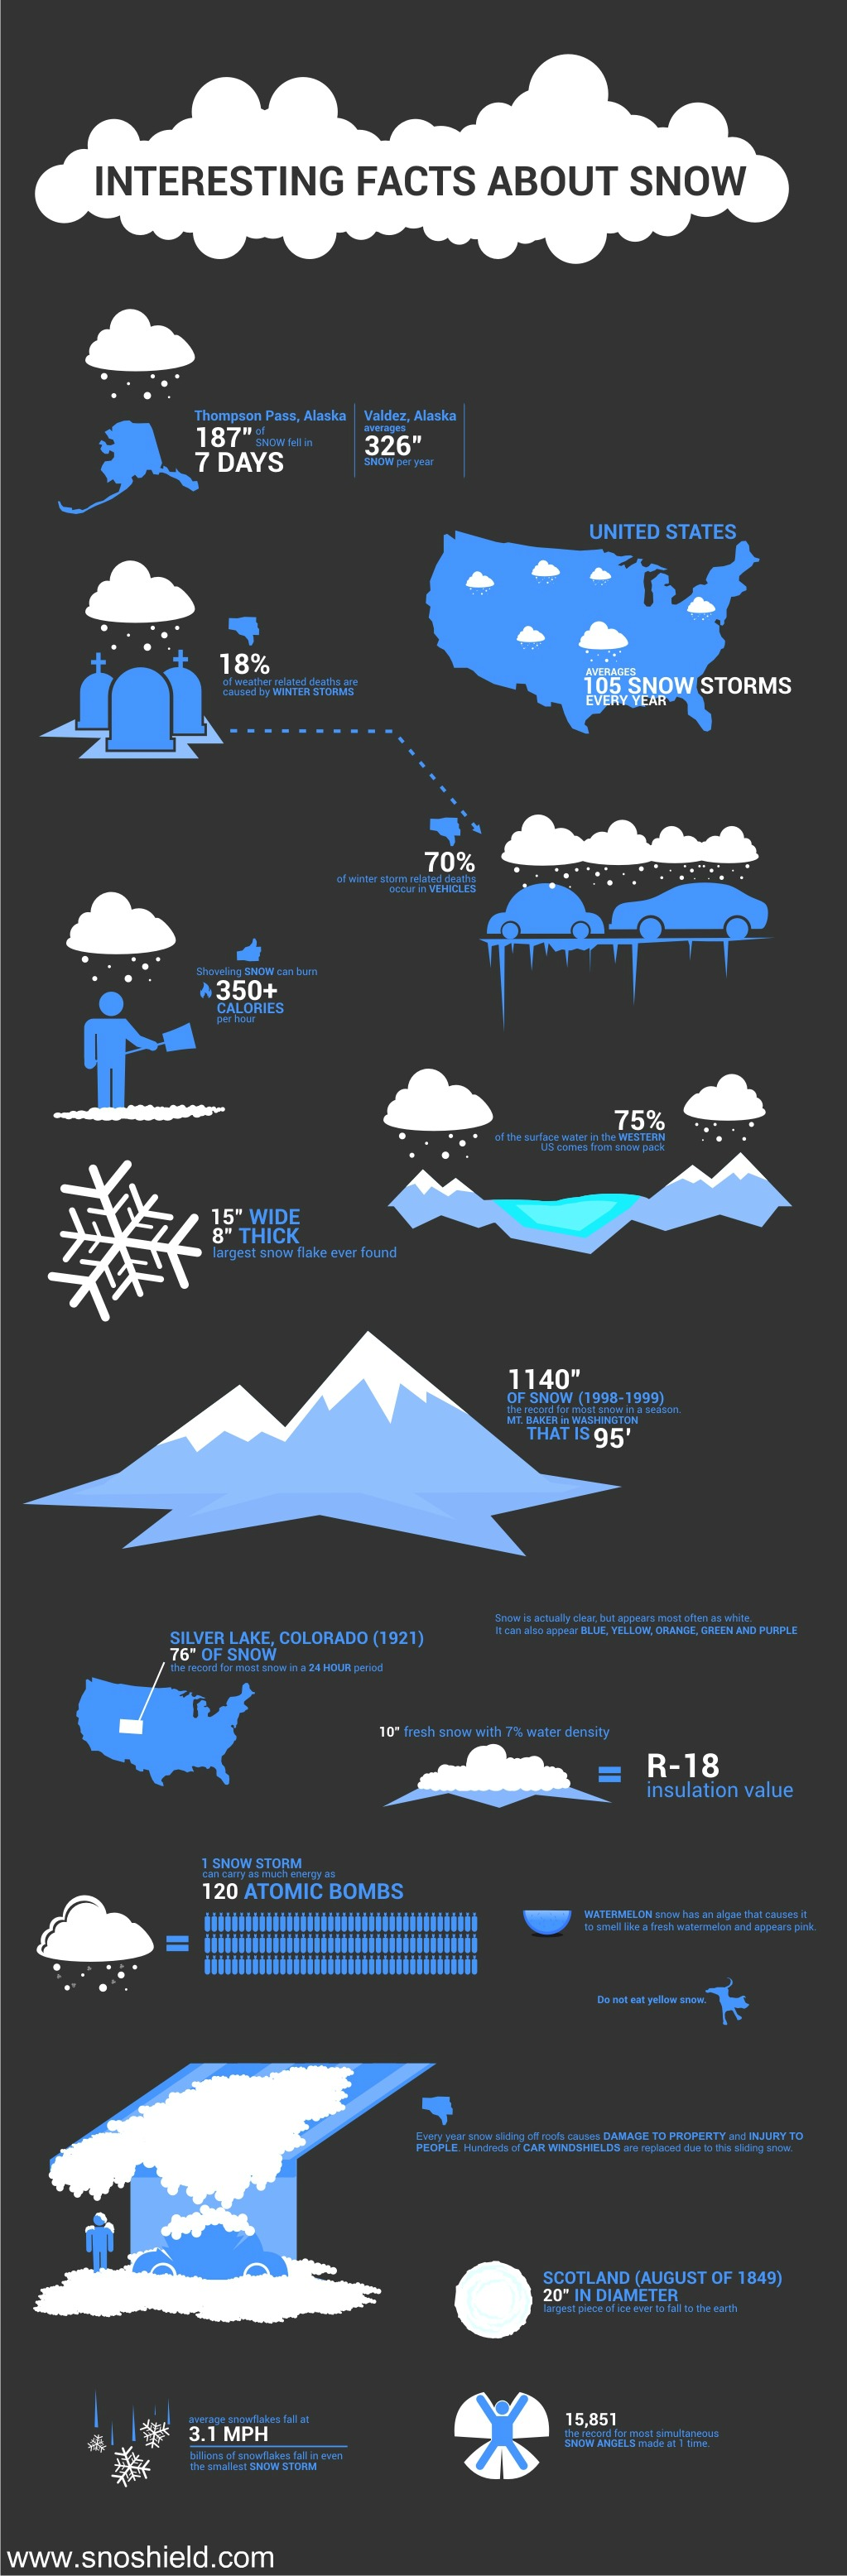 facts-about-snow